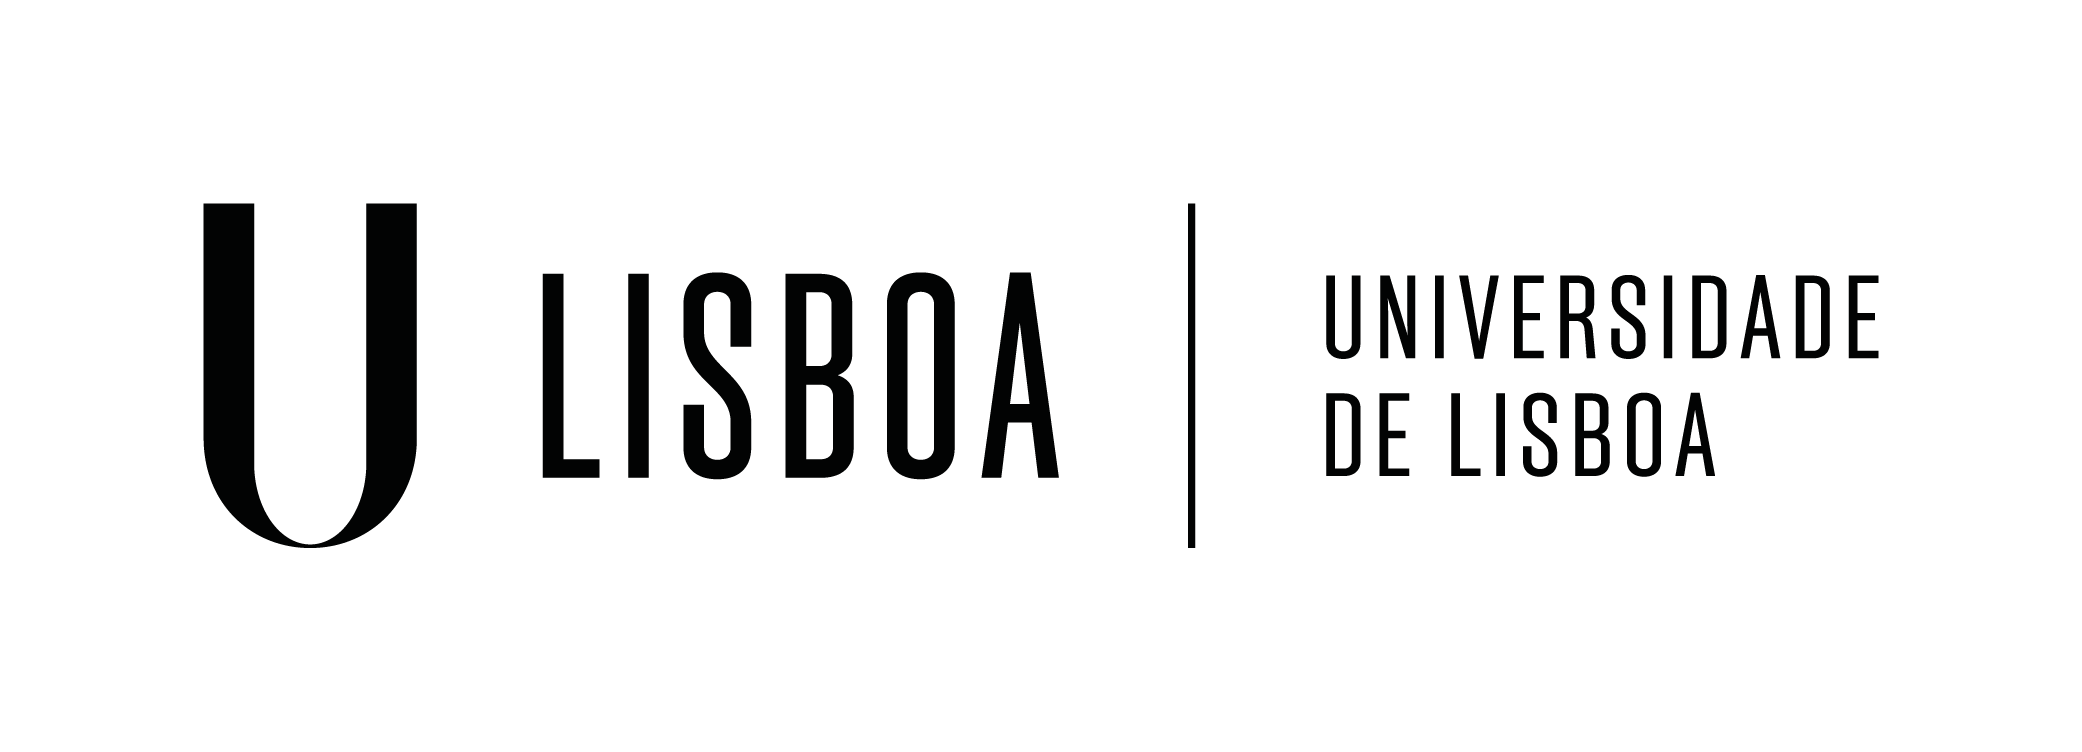 ulisboa